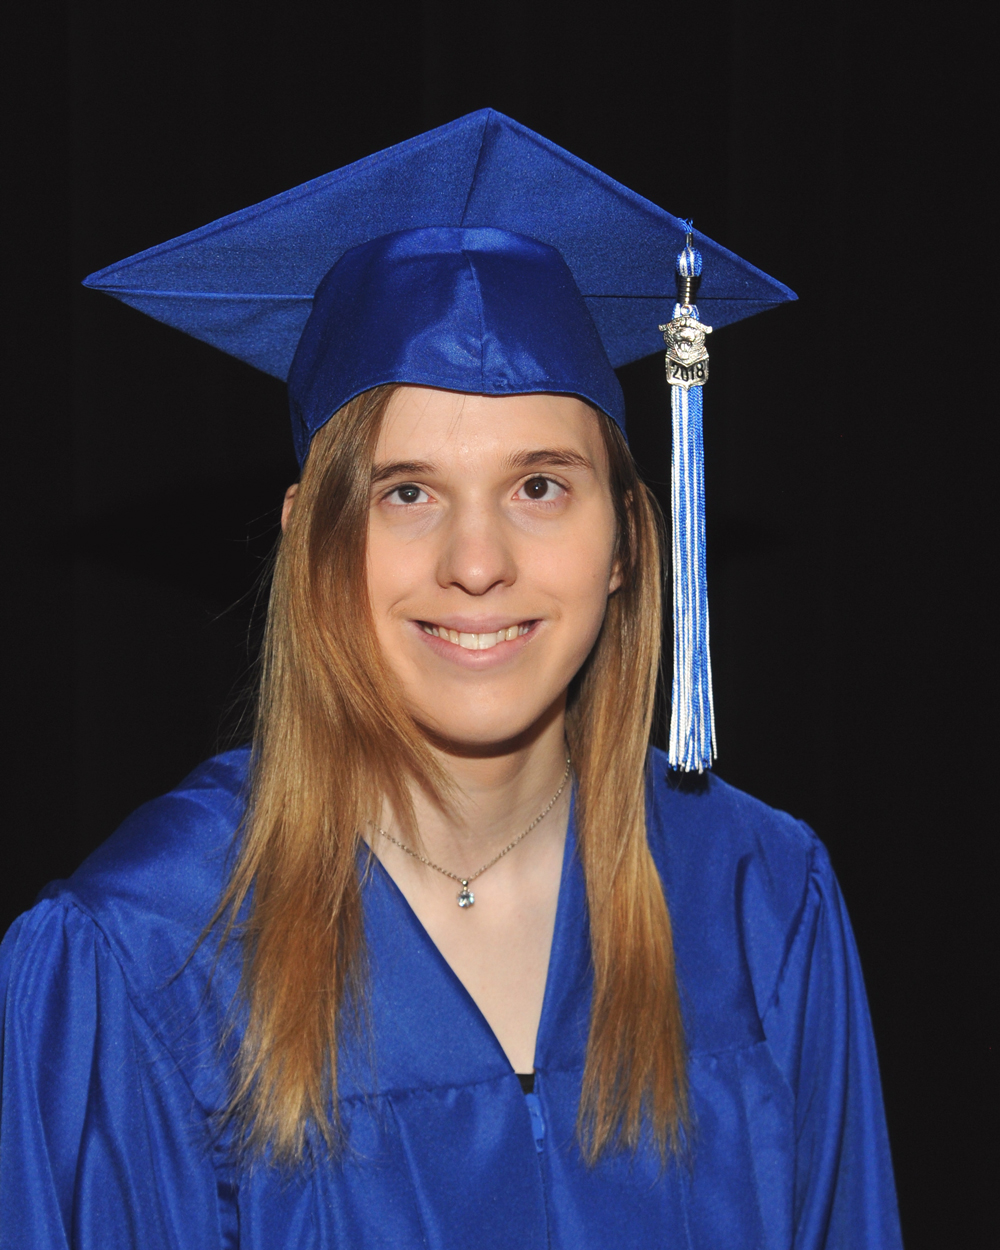 Peters in cap and gown.